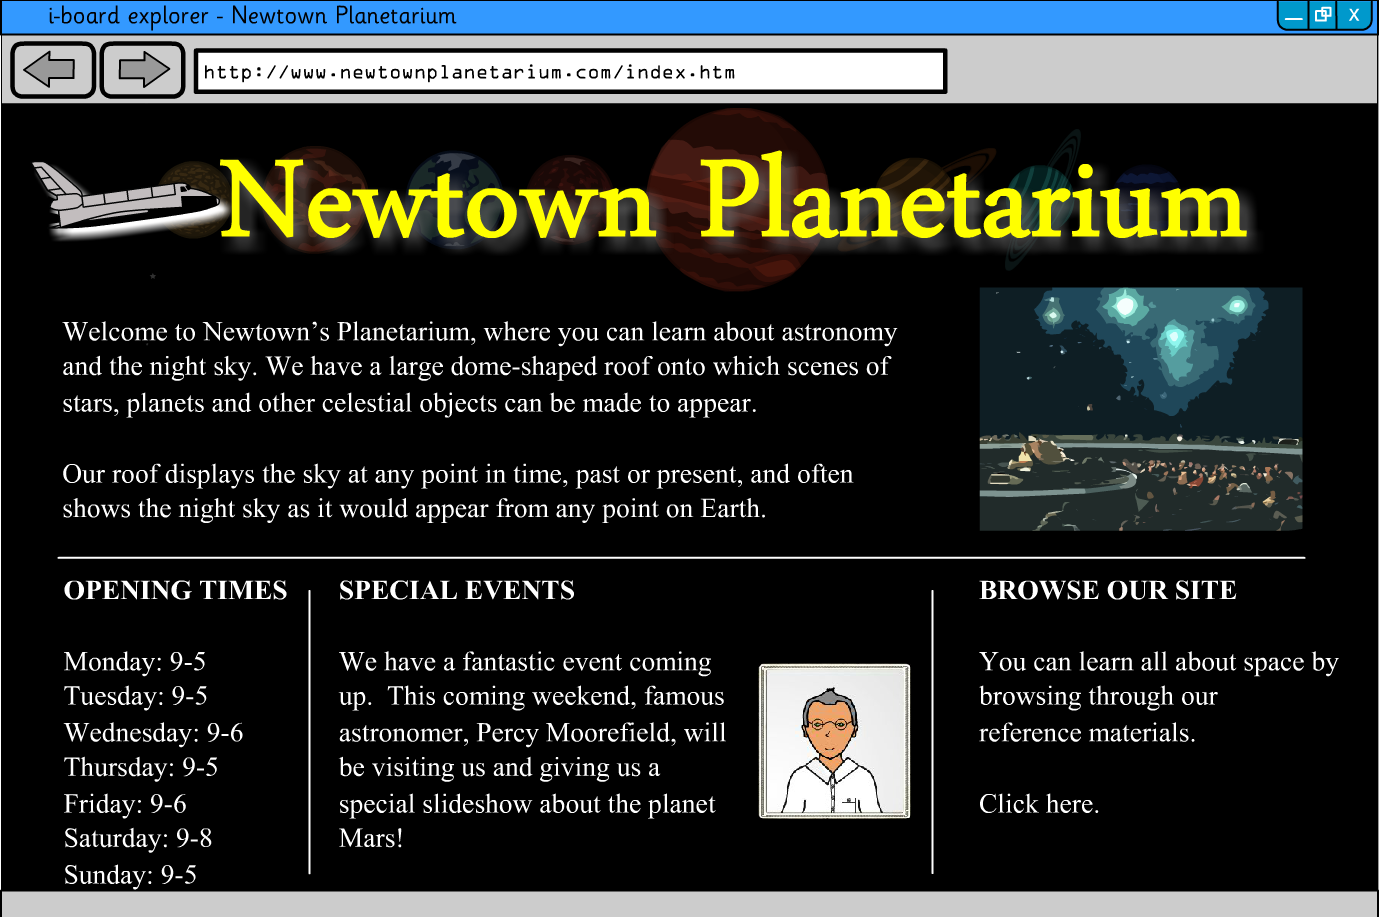 Interactive Information Website - Planets and Space - KS2 Literacy